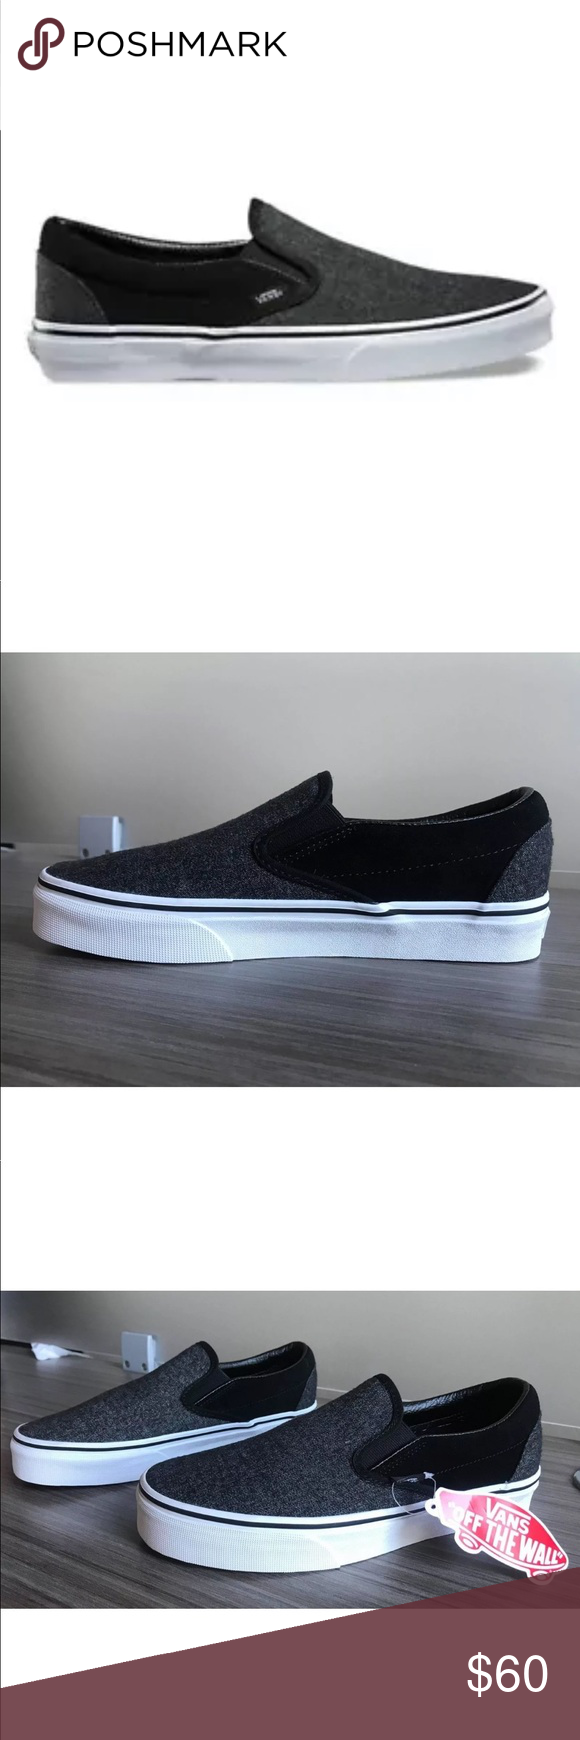 1aa637f0da Vans Men s Classic Slip-On Suede and Suiting NEW AUTHENTIC Vans Classic  Slip On Shoes